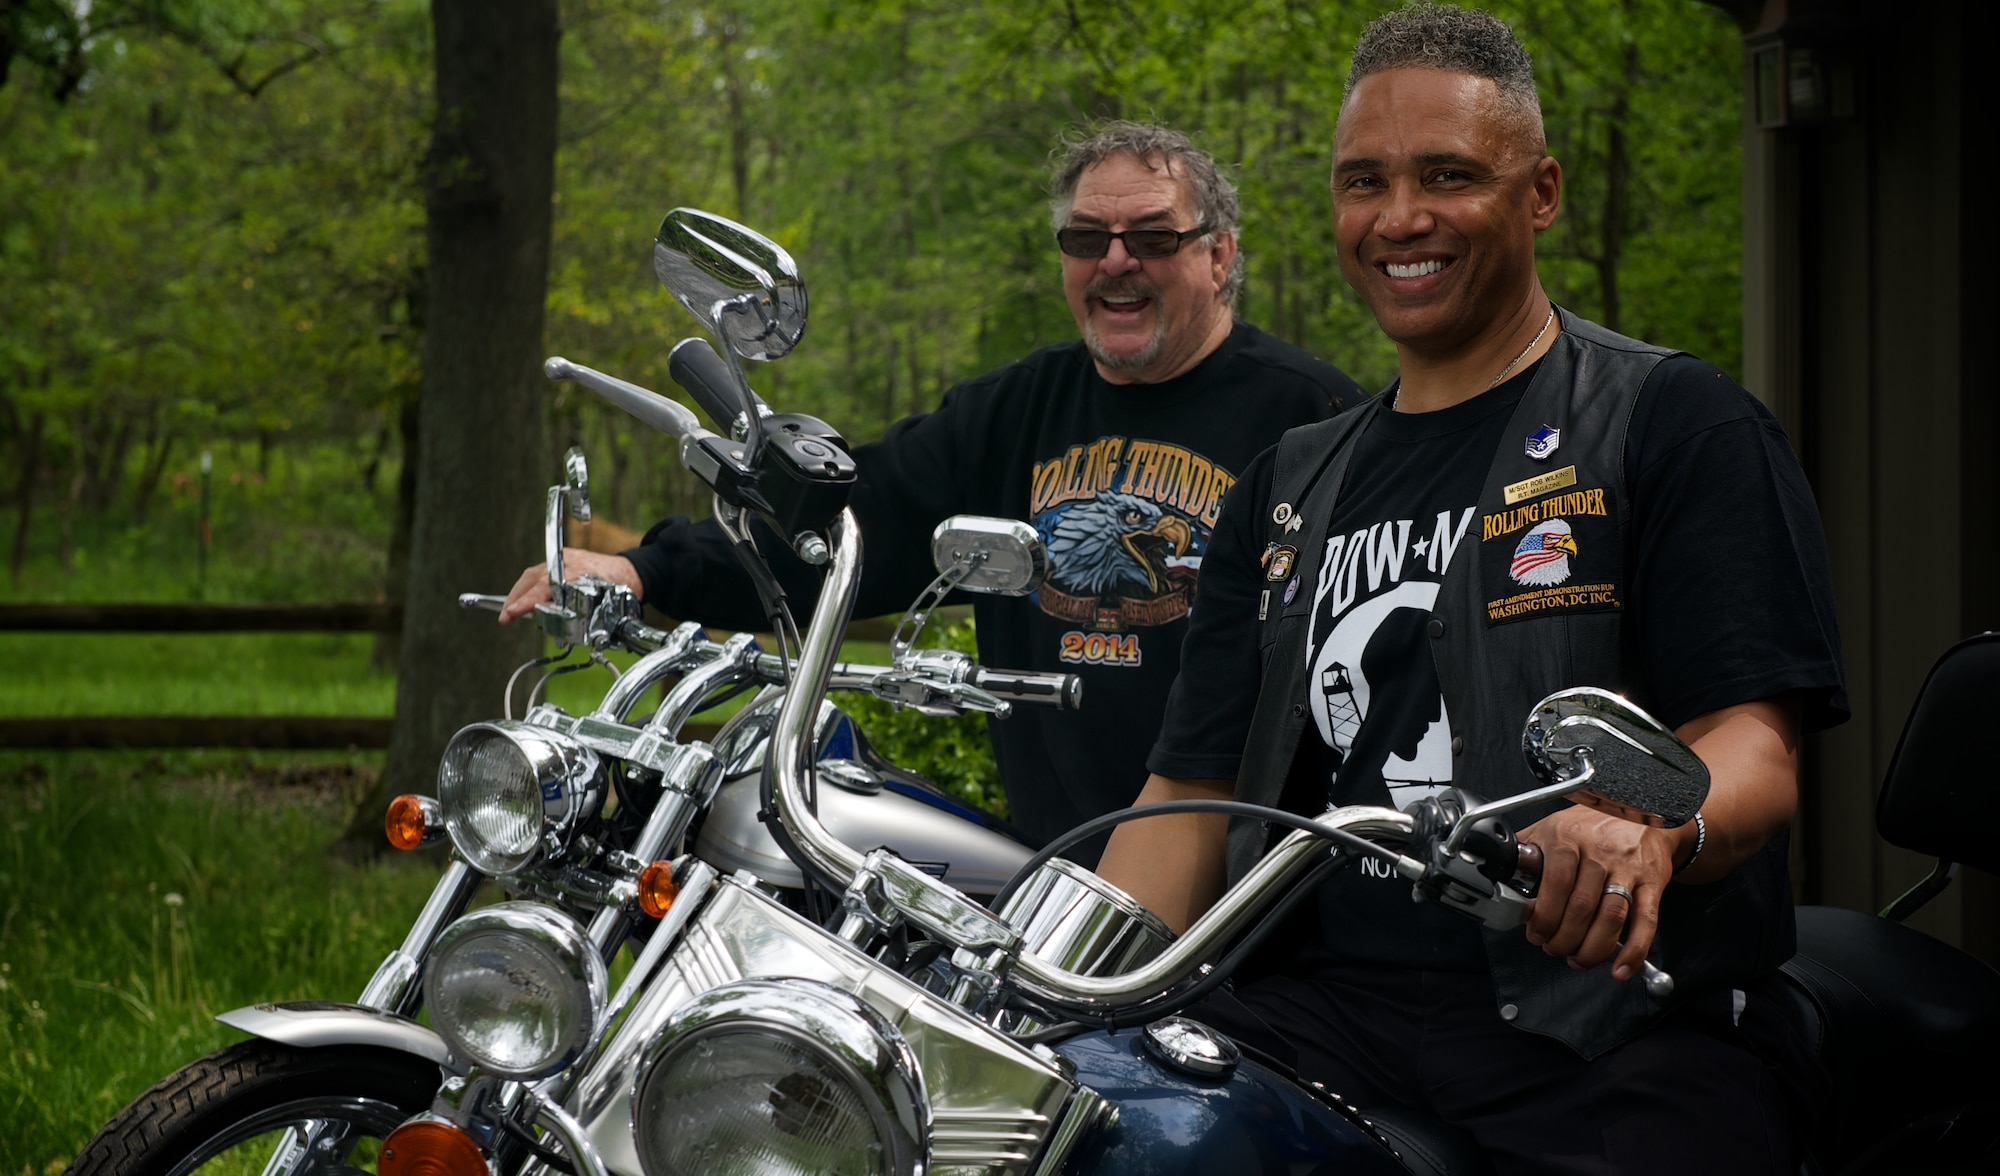 Retired Master Sgt. Rob Wilkins, front, and retired Marine 1st Sgt. Walt Sides pose for a portrait May 15, 2014, at Sides' farm outside Leesburg,Va. Wilkins and Sides are directors of Rolling Thunder, the annual motorcycle demonstration run through Washington, D.C., which attempts to raise awareness of military veterans, prisoners of war and missing in action personnel. (U.S. Air Force photo/Senior Airman Alexander W. Riedel)